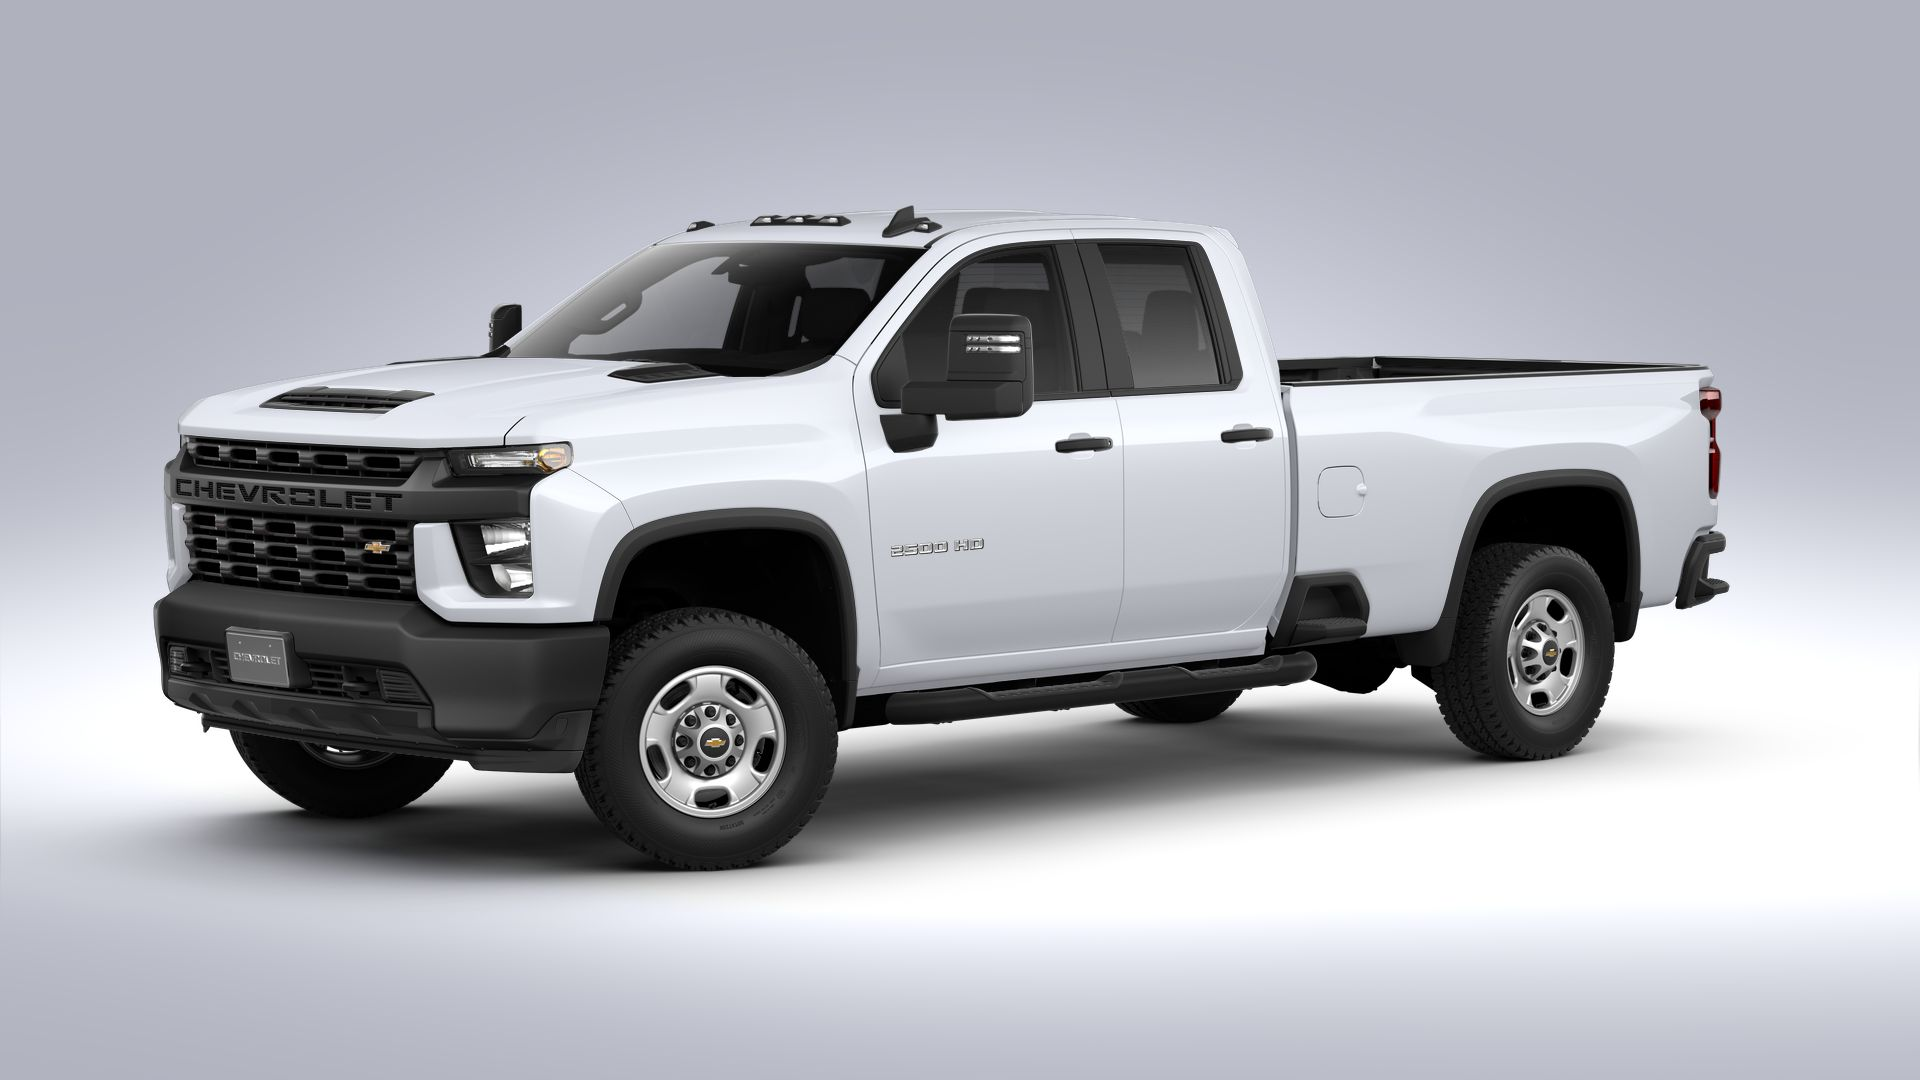 New 2021 Chevrolet Silverado 2500 HD WT REAR WHEEL DRIVE Extended Cab